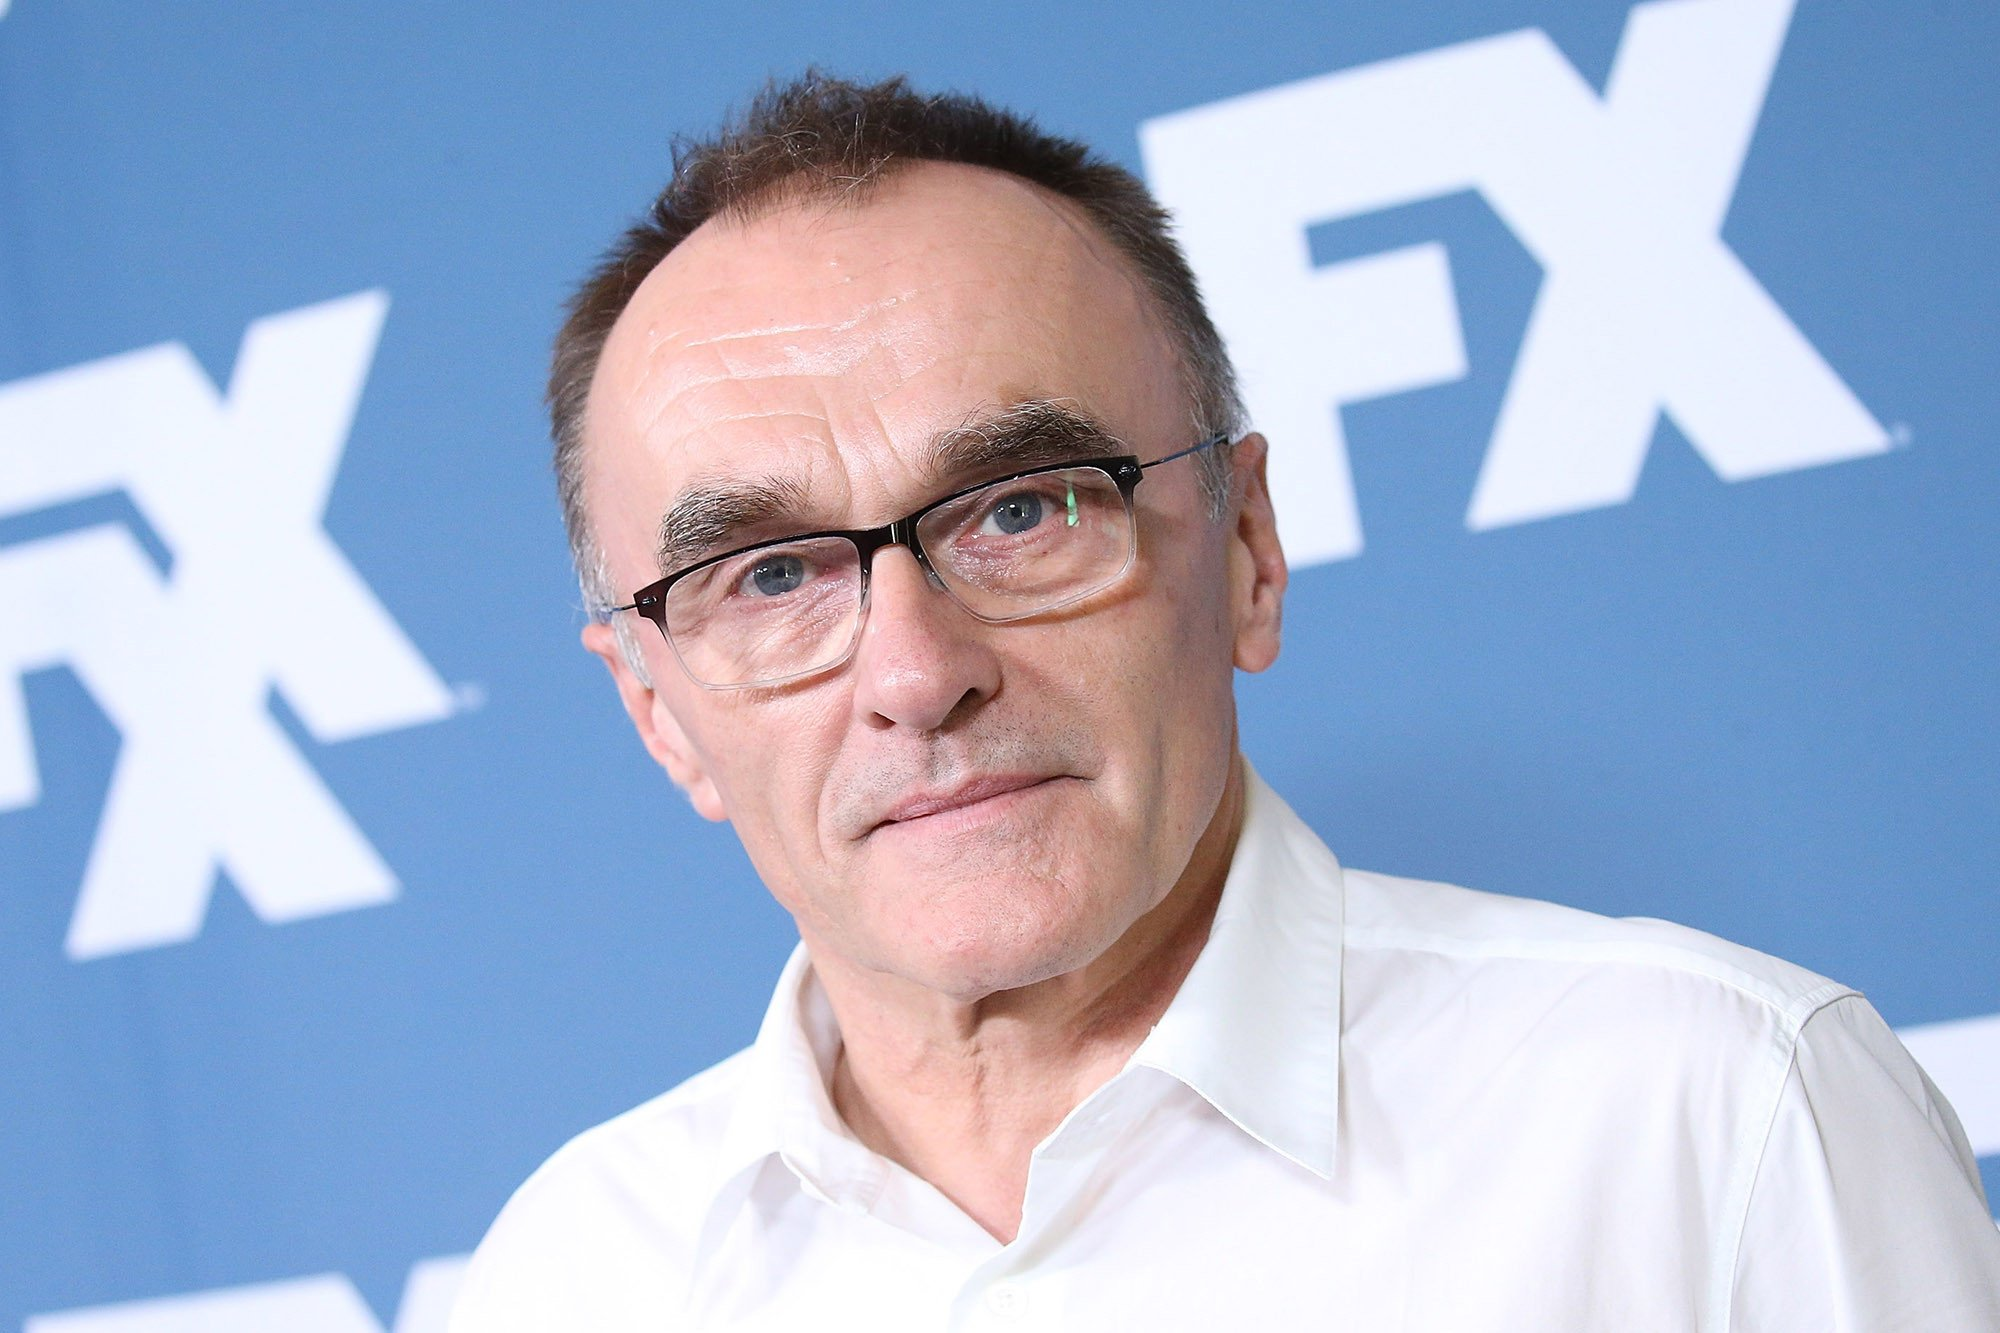 Danny Boyle will write next Bond Girl role to fit #MeToo era